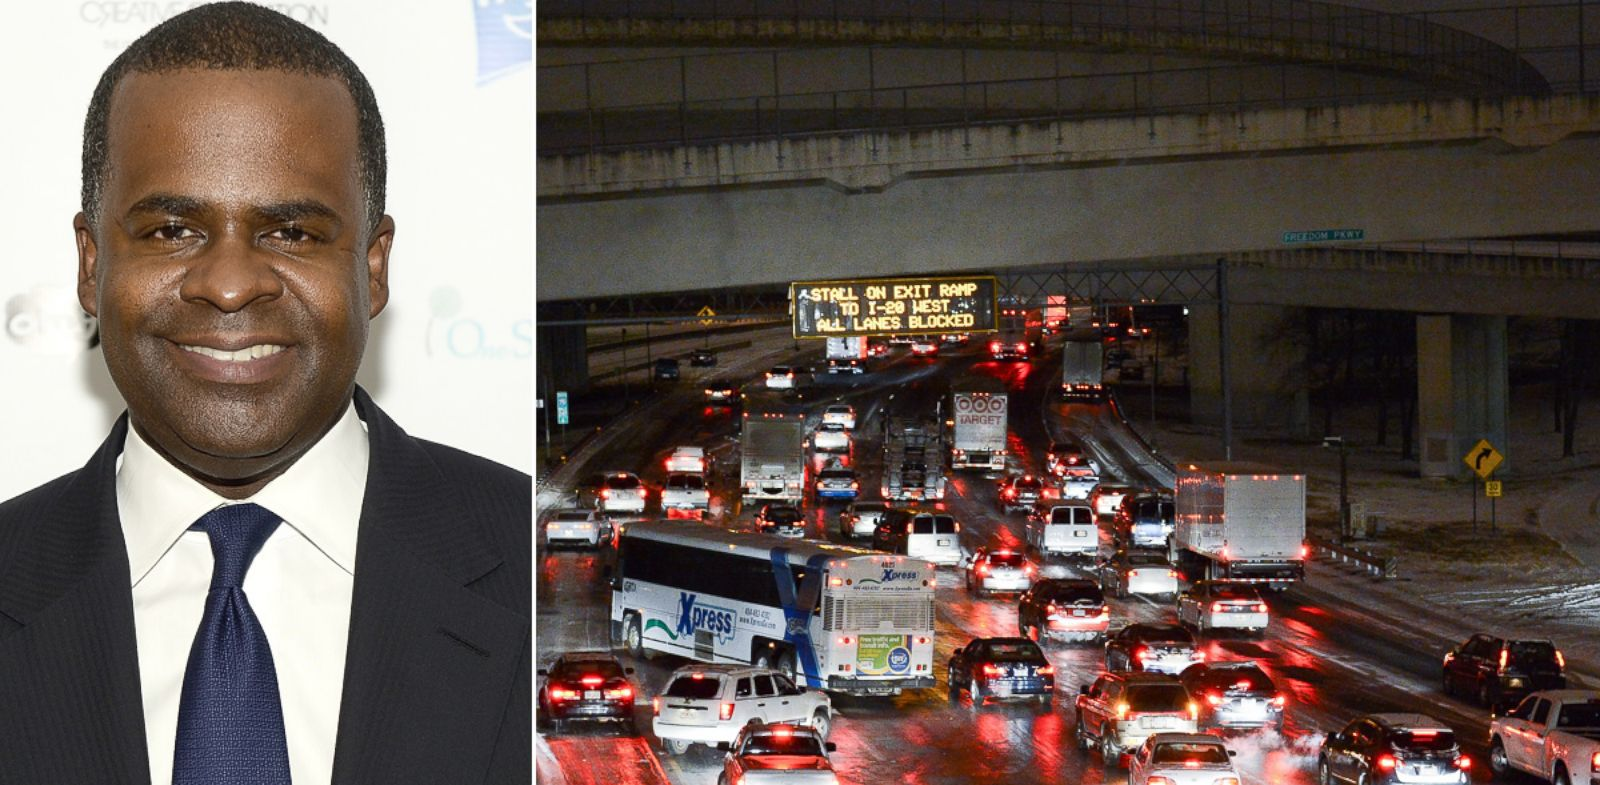 PHOTO: At left, Atlanta Mayor Kasim Reed, and at right, traffic stalled on Interstate 75/85